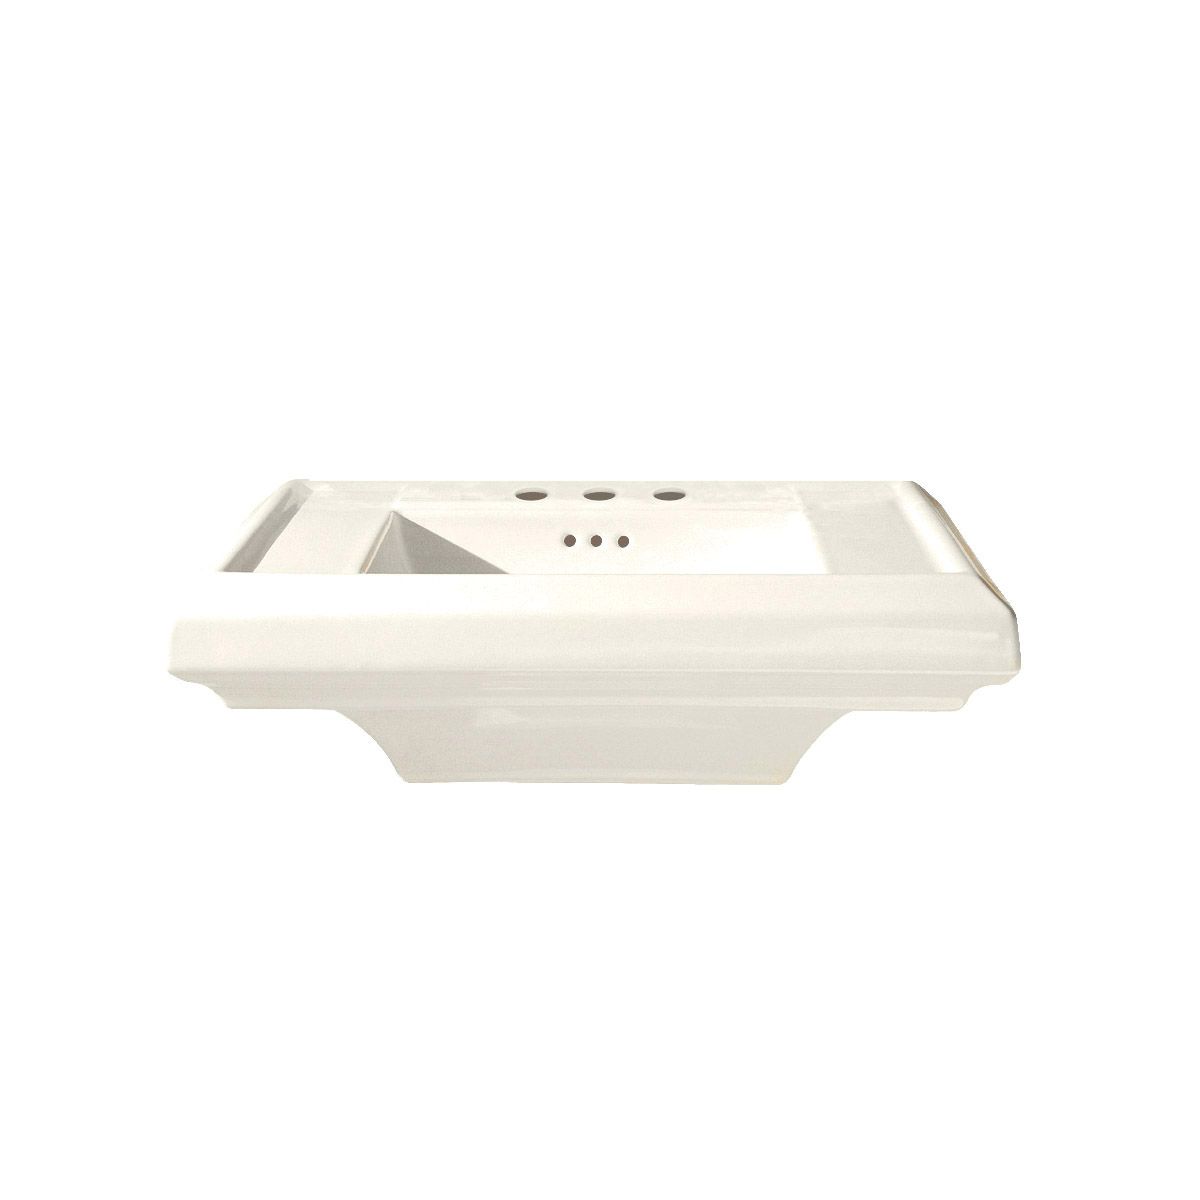 American Standard 0790.004.222 Town Square® Pedestal Sink Top, 24 in L x 20-1/4 in W x 7-1/2 in H, Square Sink, 4 in Faucet Hole Spacing, Import